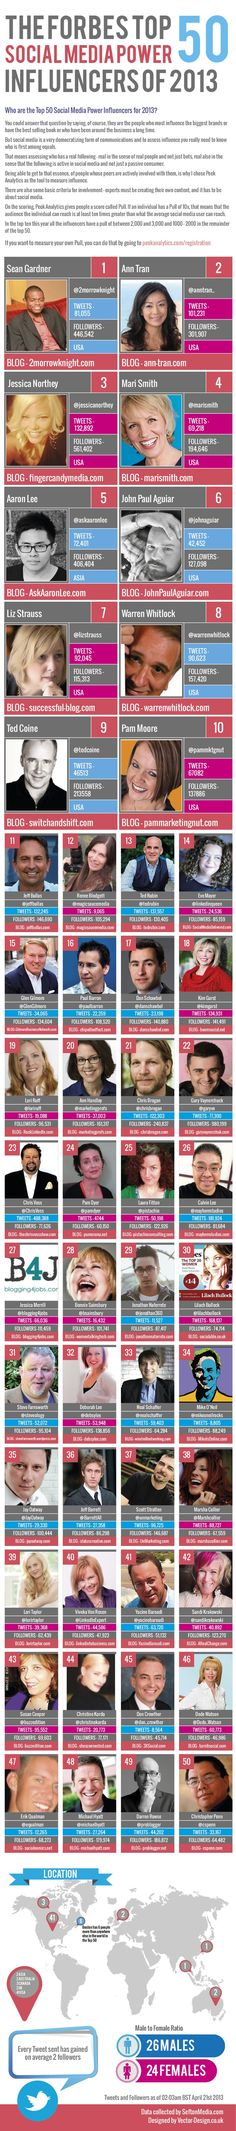 The Forbes Top 50 Social Media Influencer